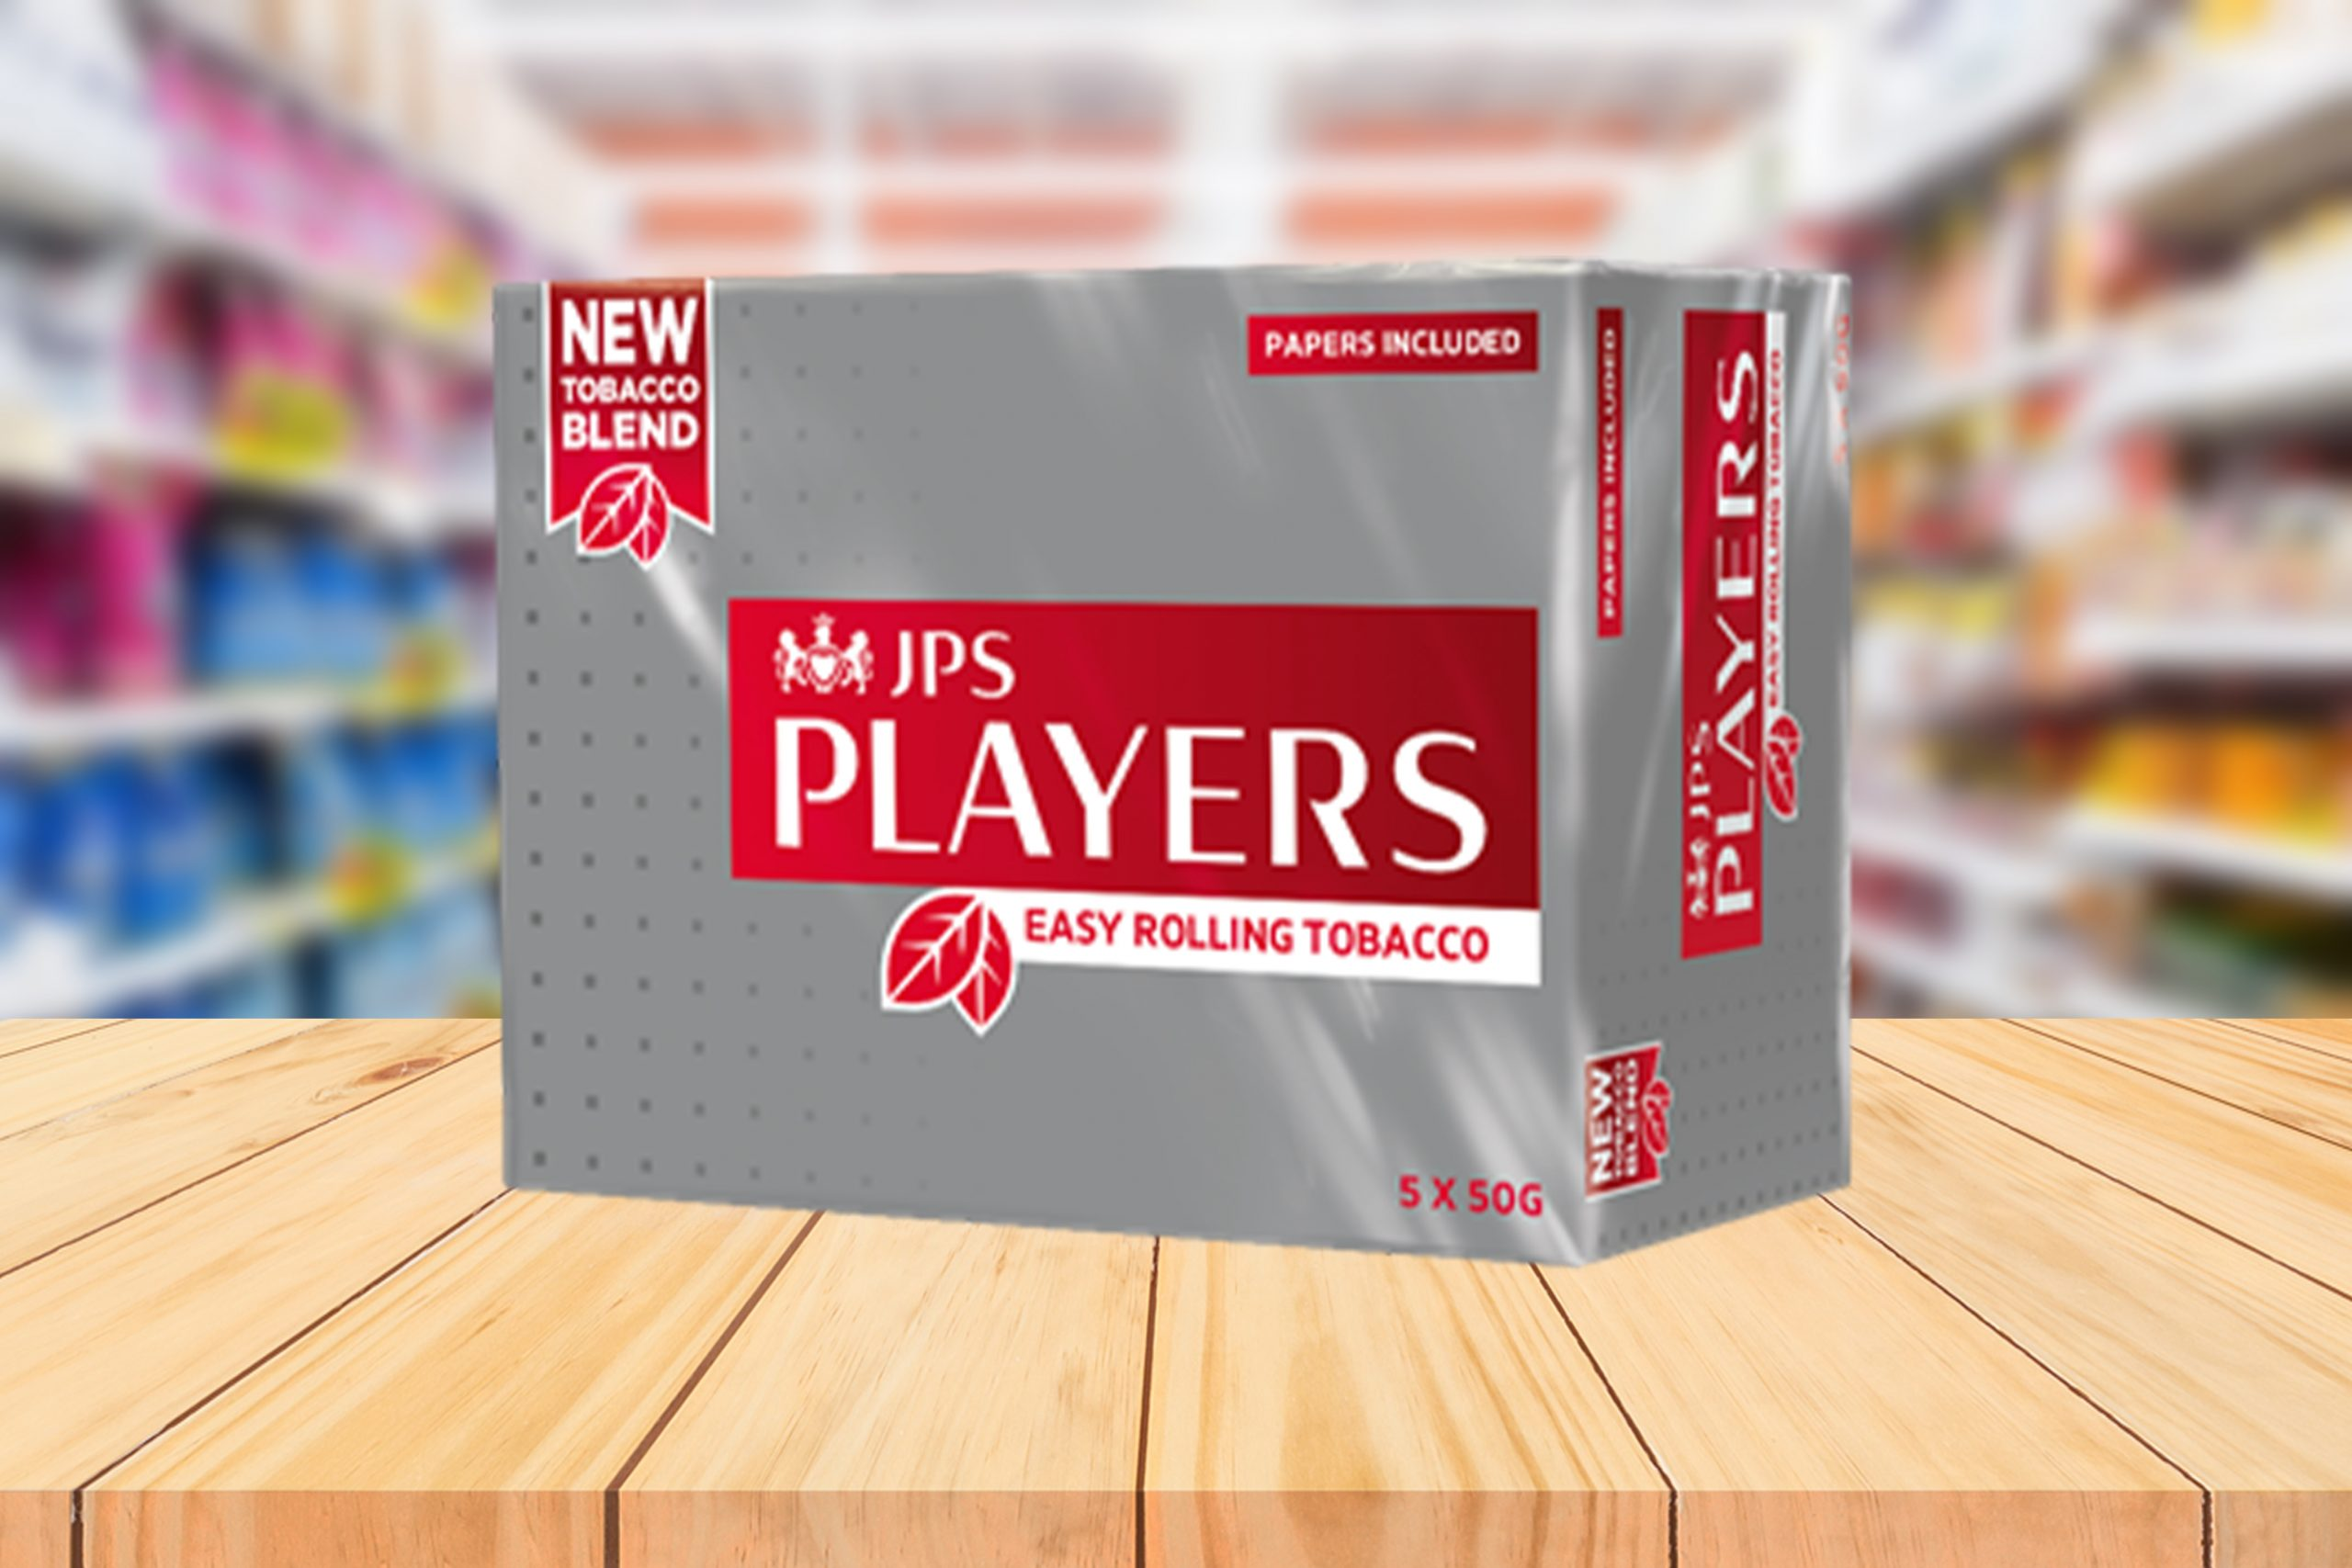 Sales Set to Start Rolling in with Launch of New Blend from JPS Players